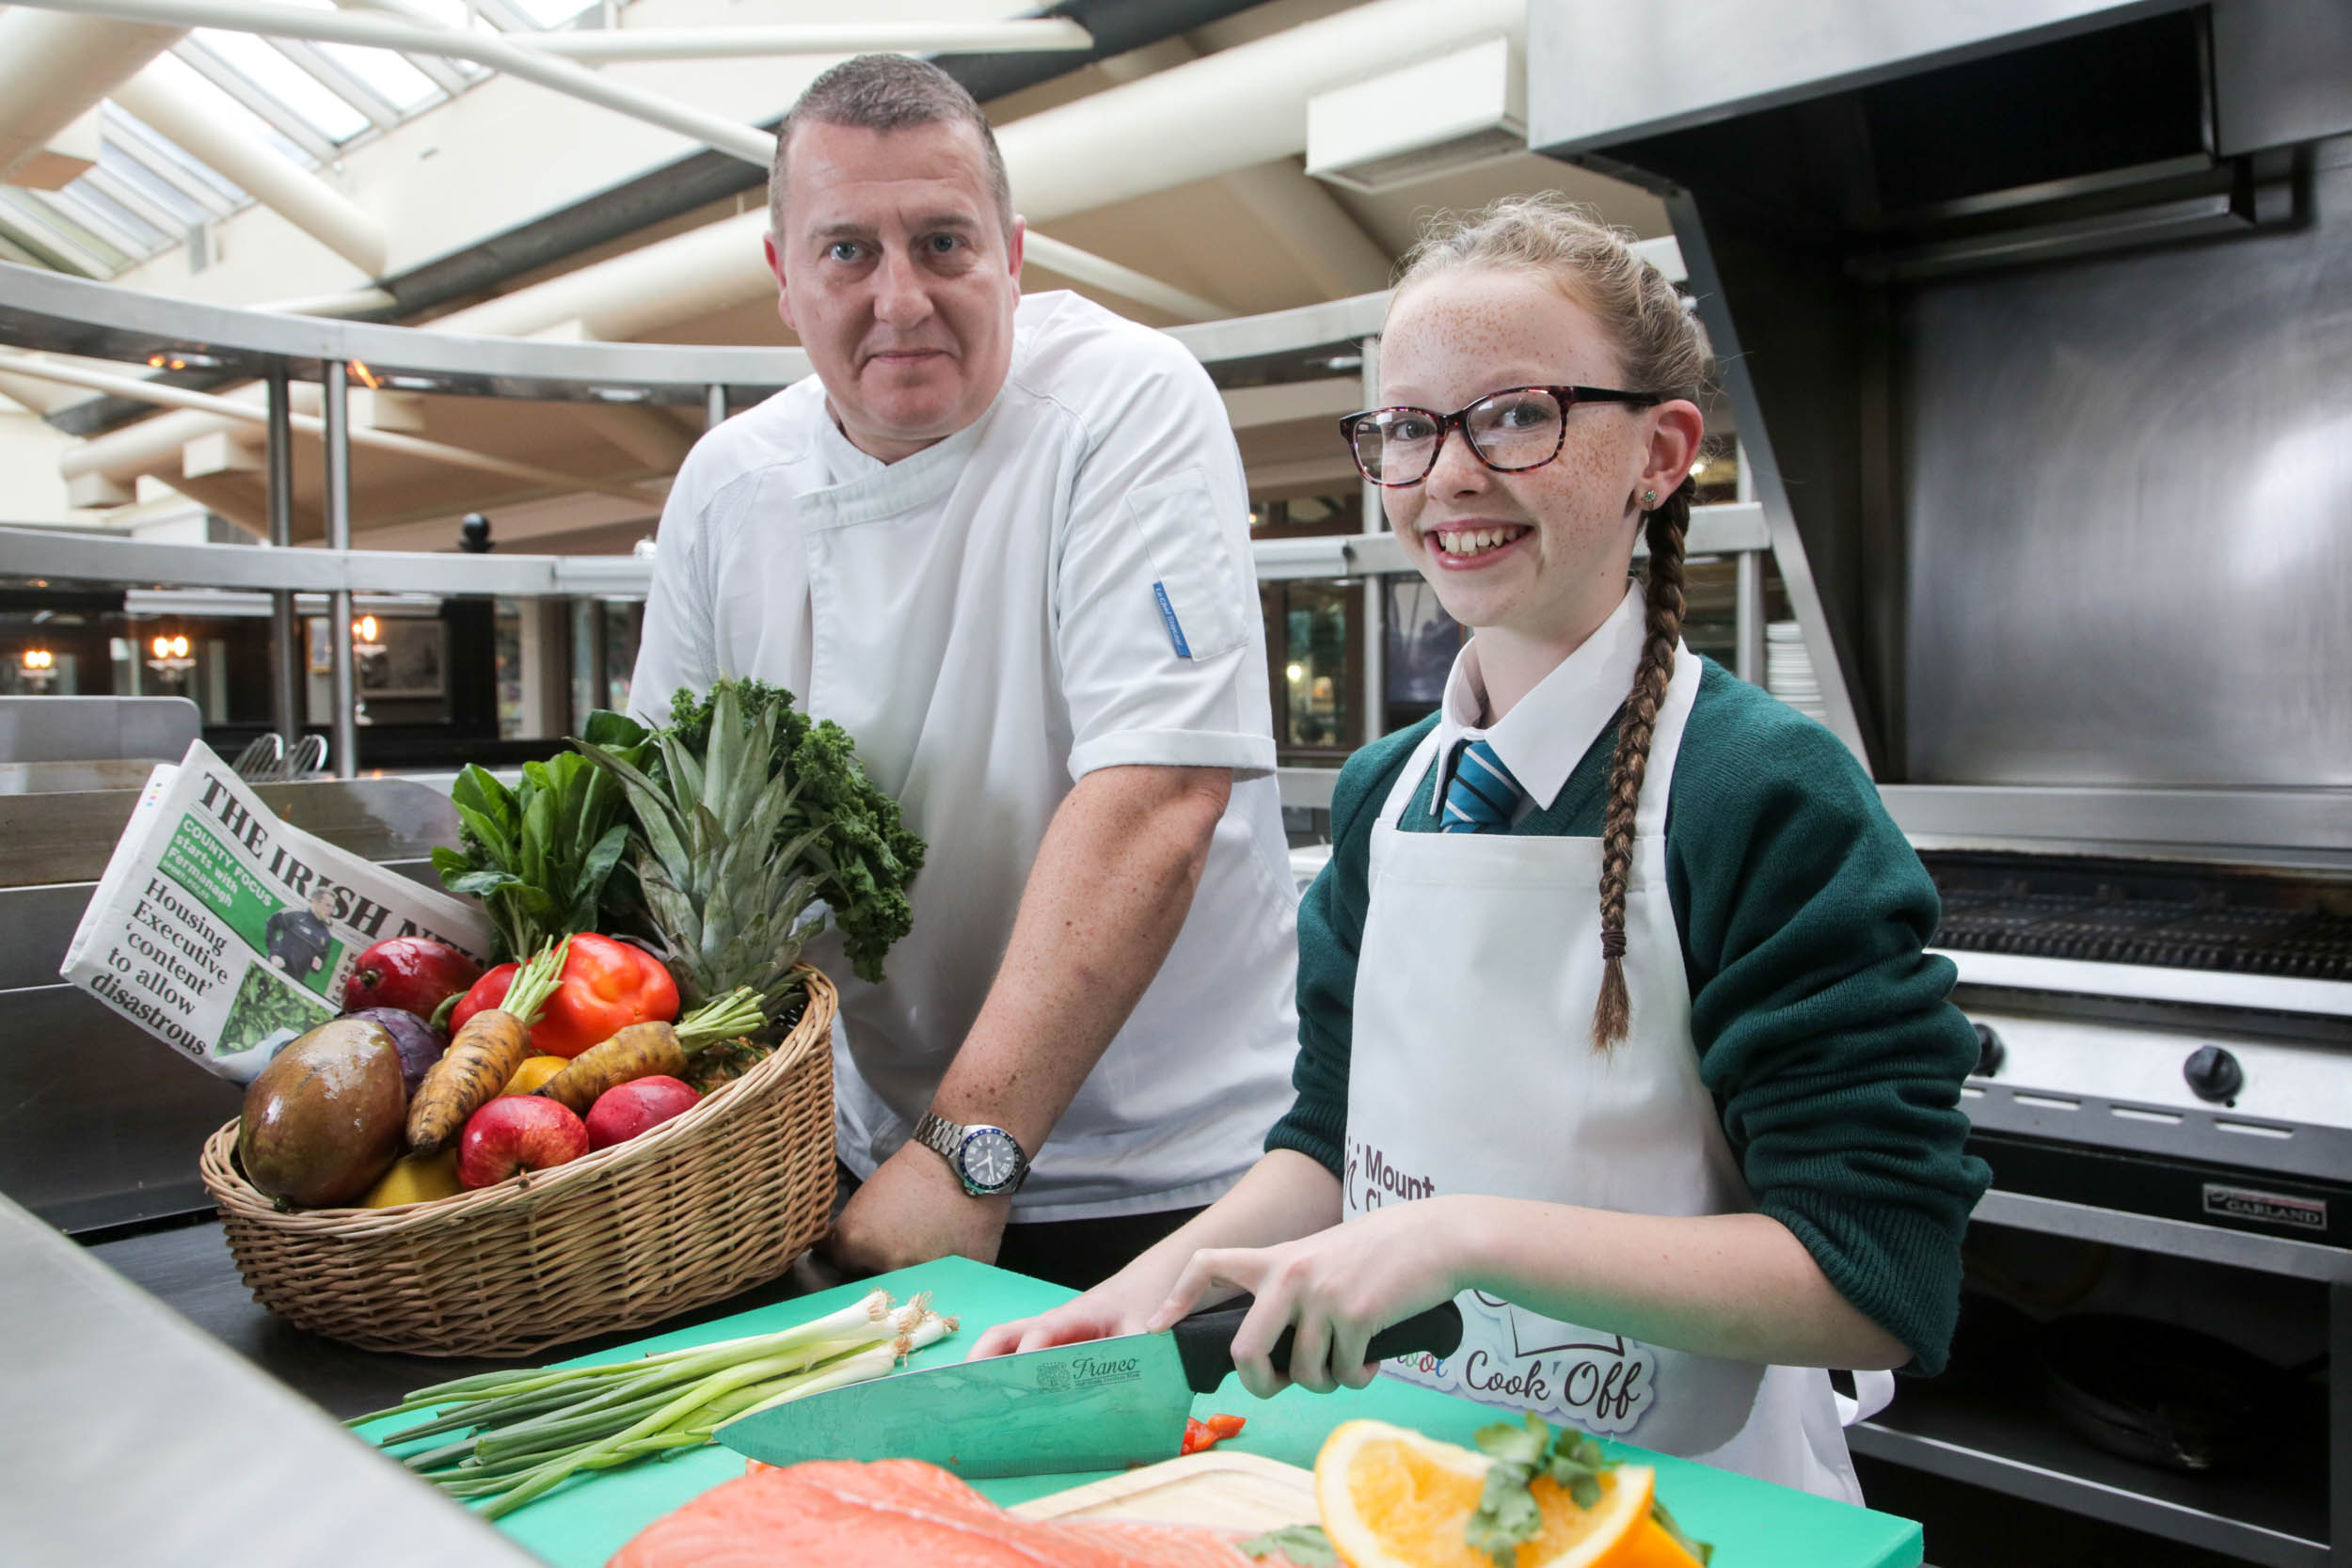 Budding chefs wanted for the Big School Cook Off